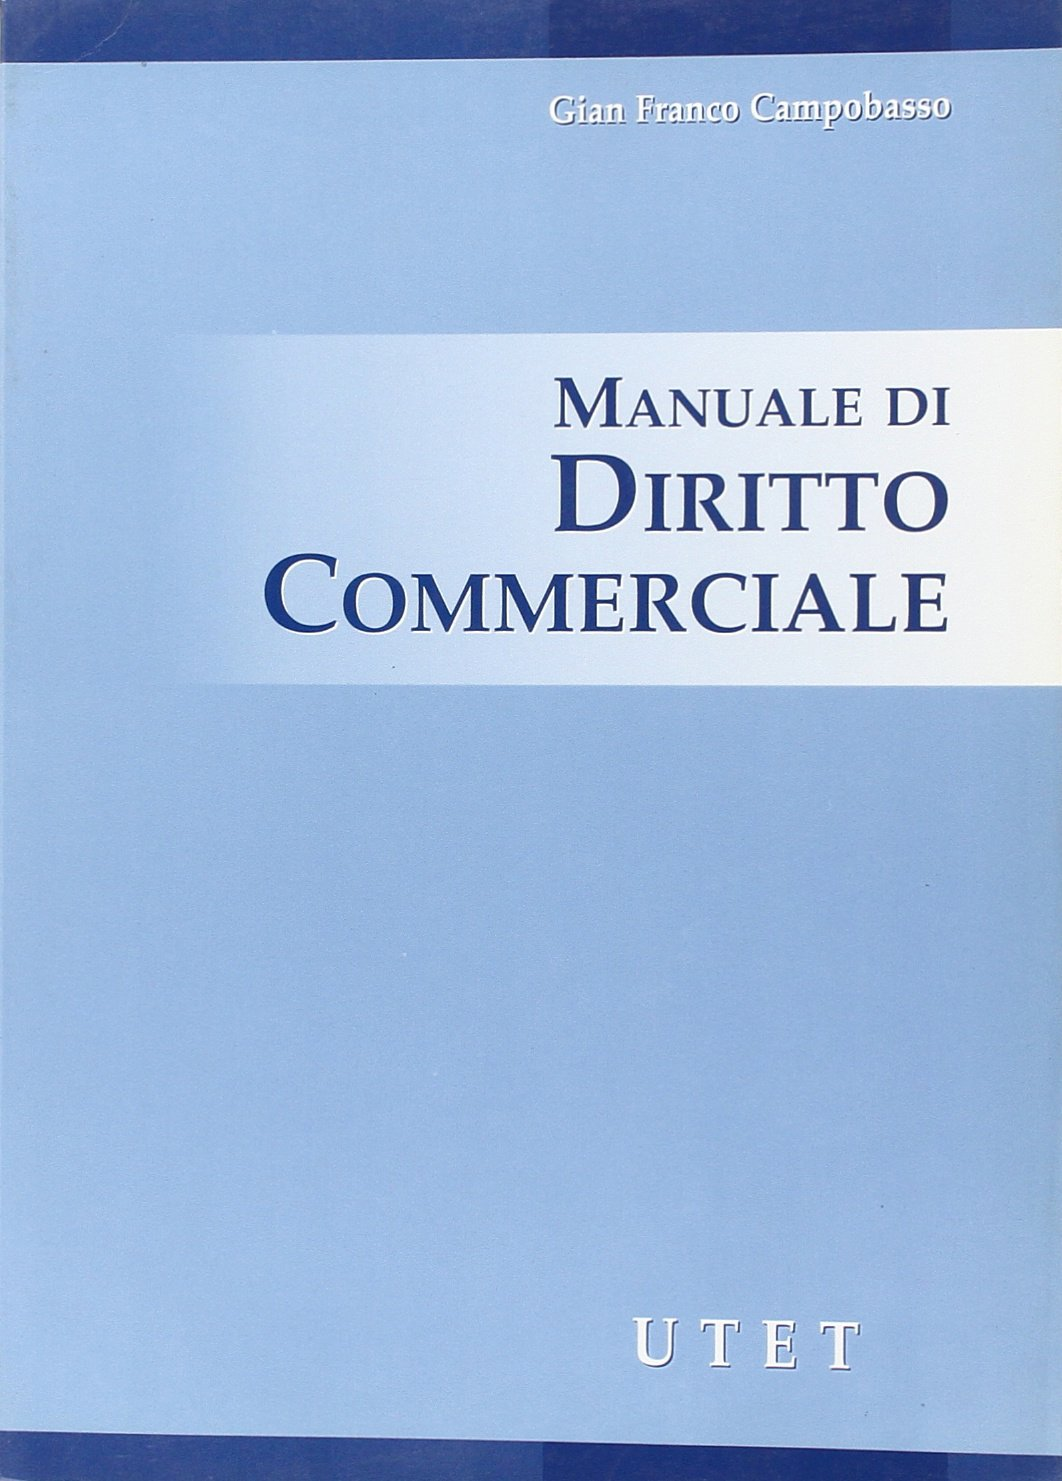 Amazon.it: Manuale di diritto commerciale - Campobasso, Gian Franco - Libri